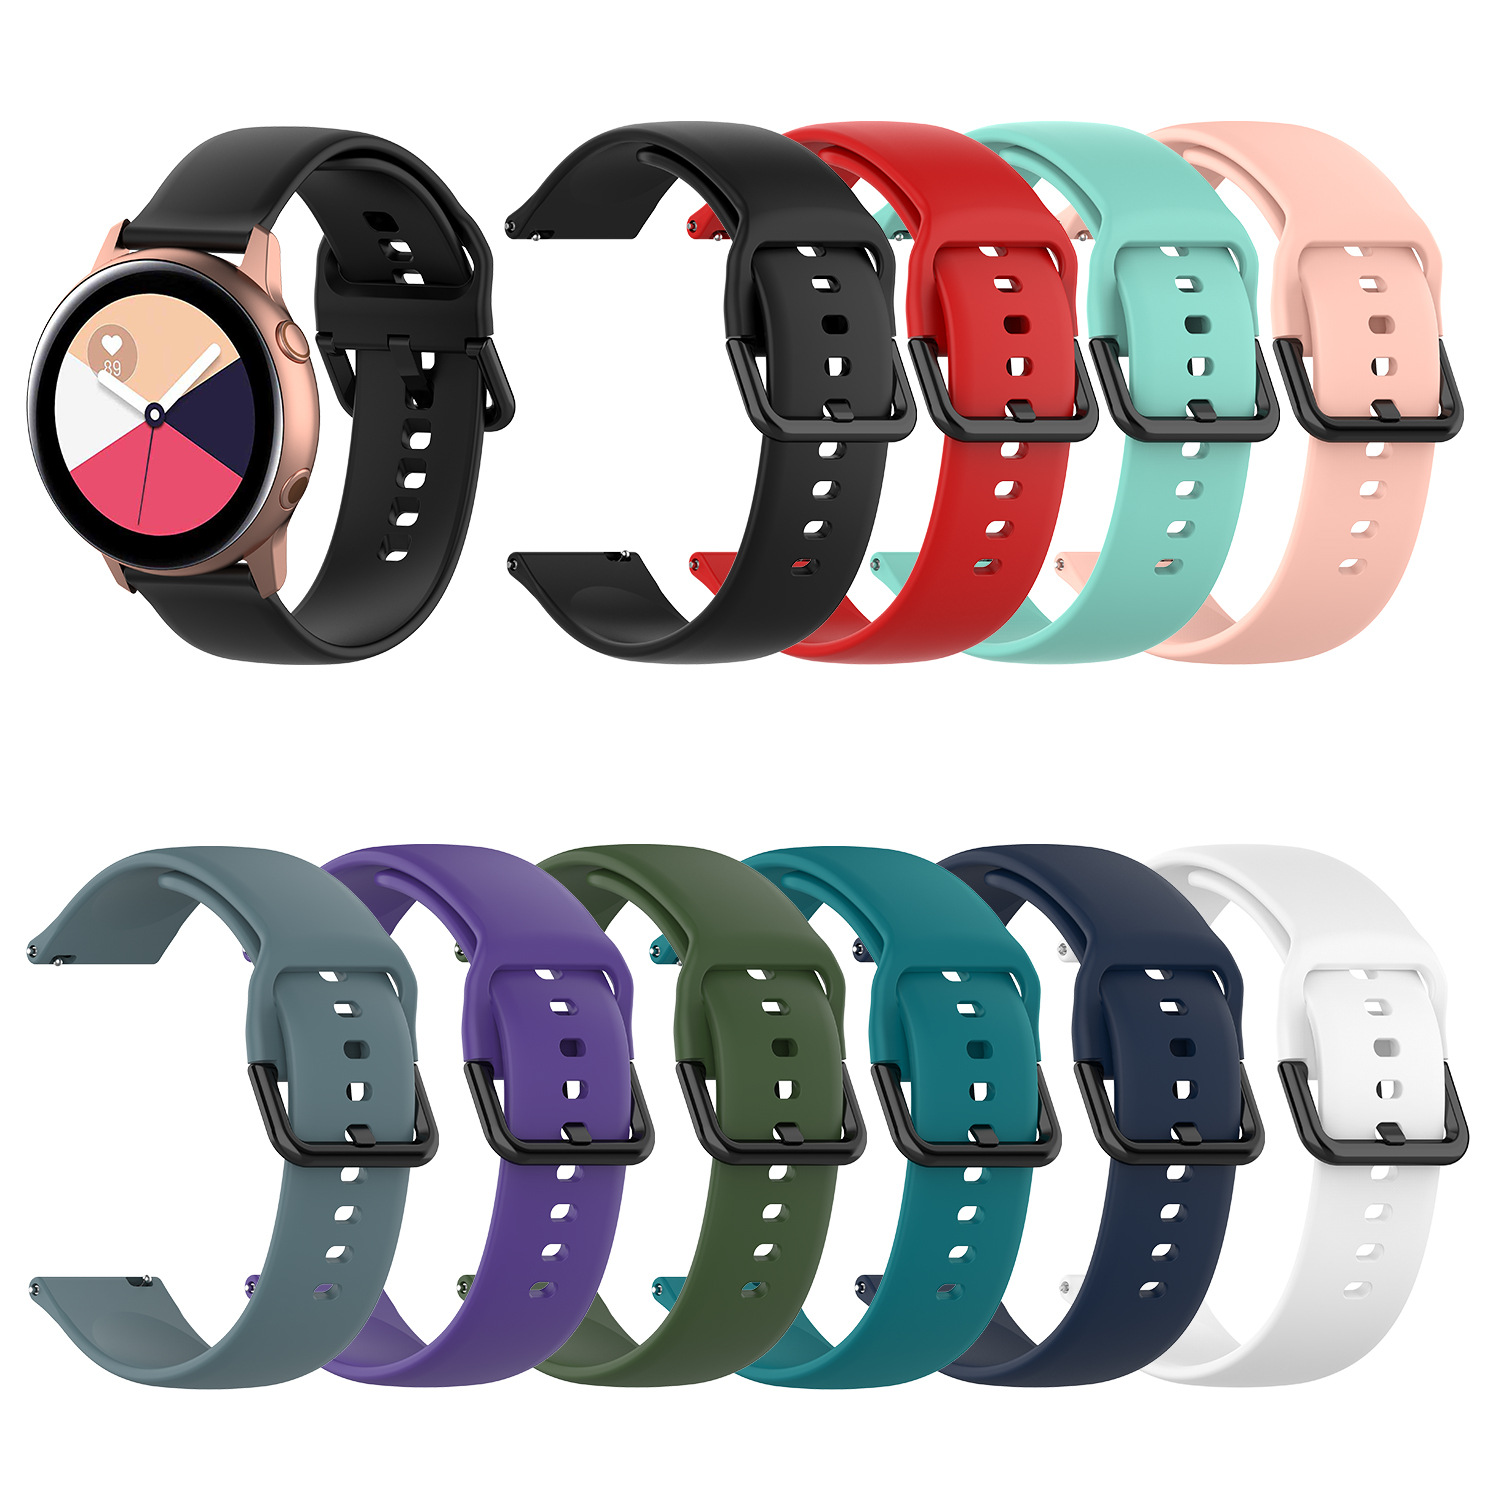 Silicone Watch Band For Amazfit Bip For NOKIA STEEL HR 40MM Band NOKIA WITHING STEEL HR 40MM Strap Bracelet For Nokia Band